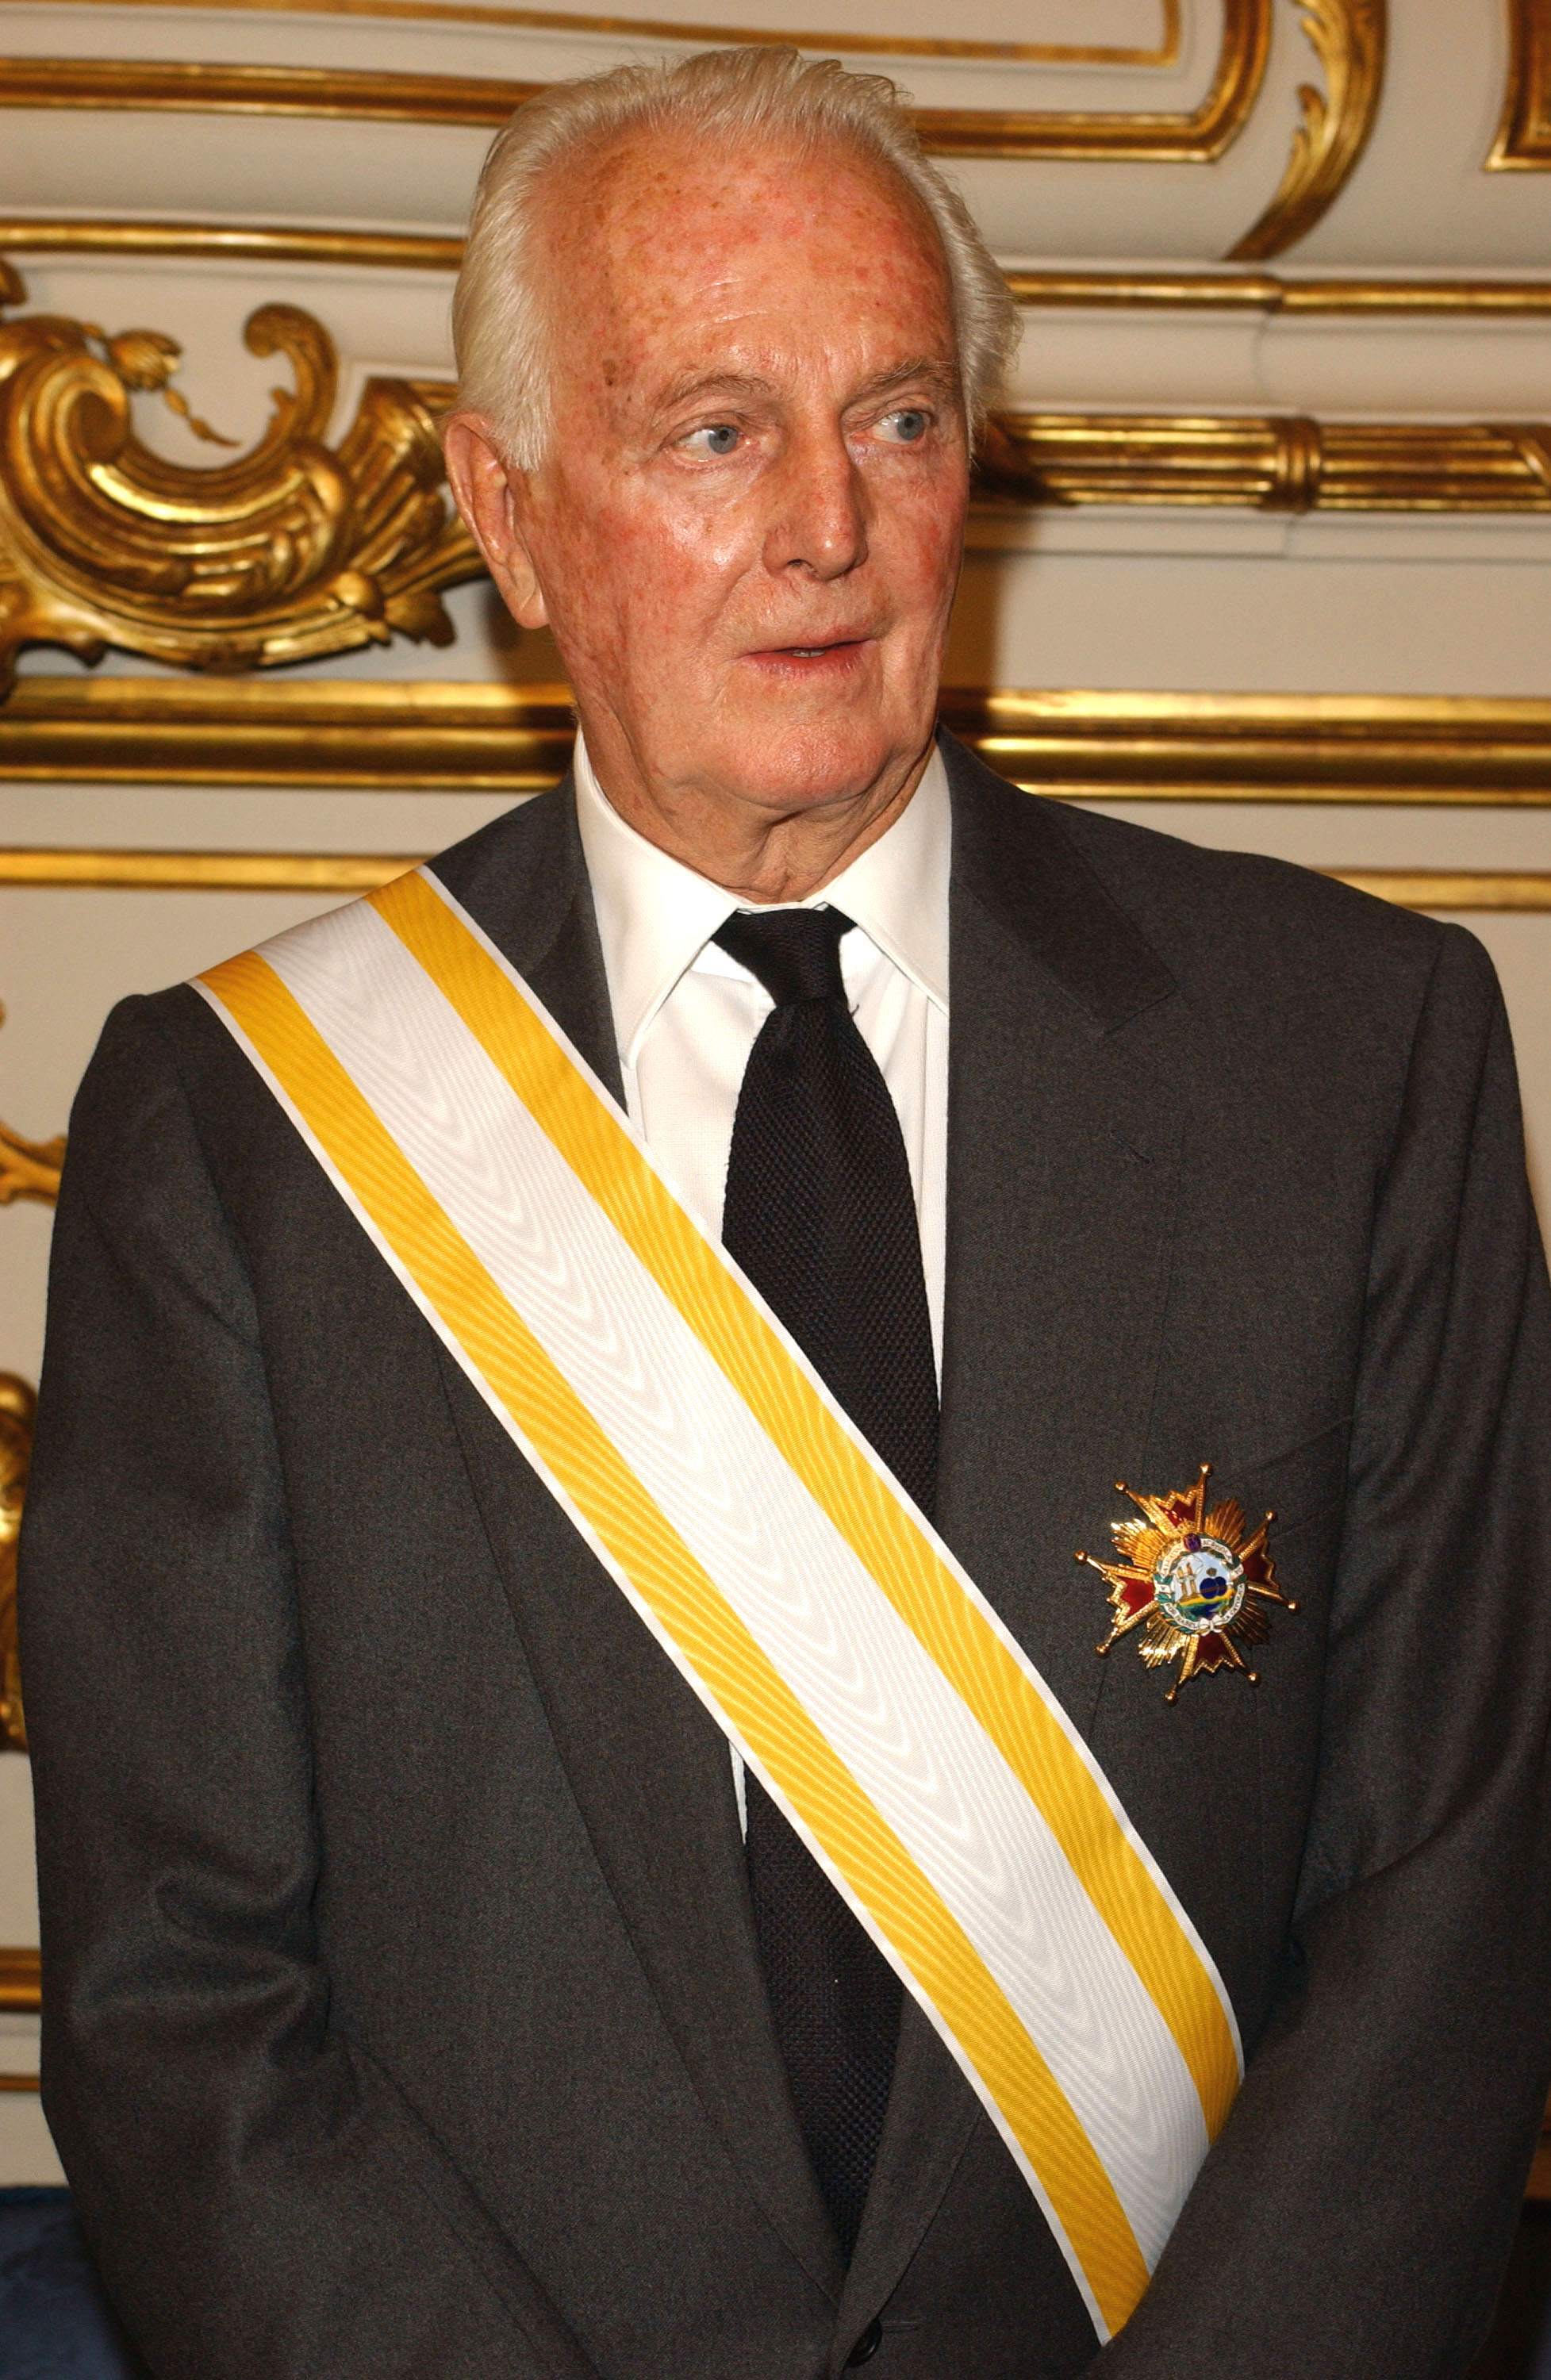 Hubert-de-Givenchy-Dies-At-91-A-Look-Back-At-His-Fashion-Legacy